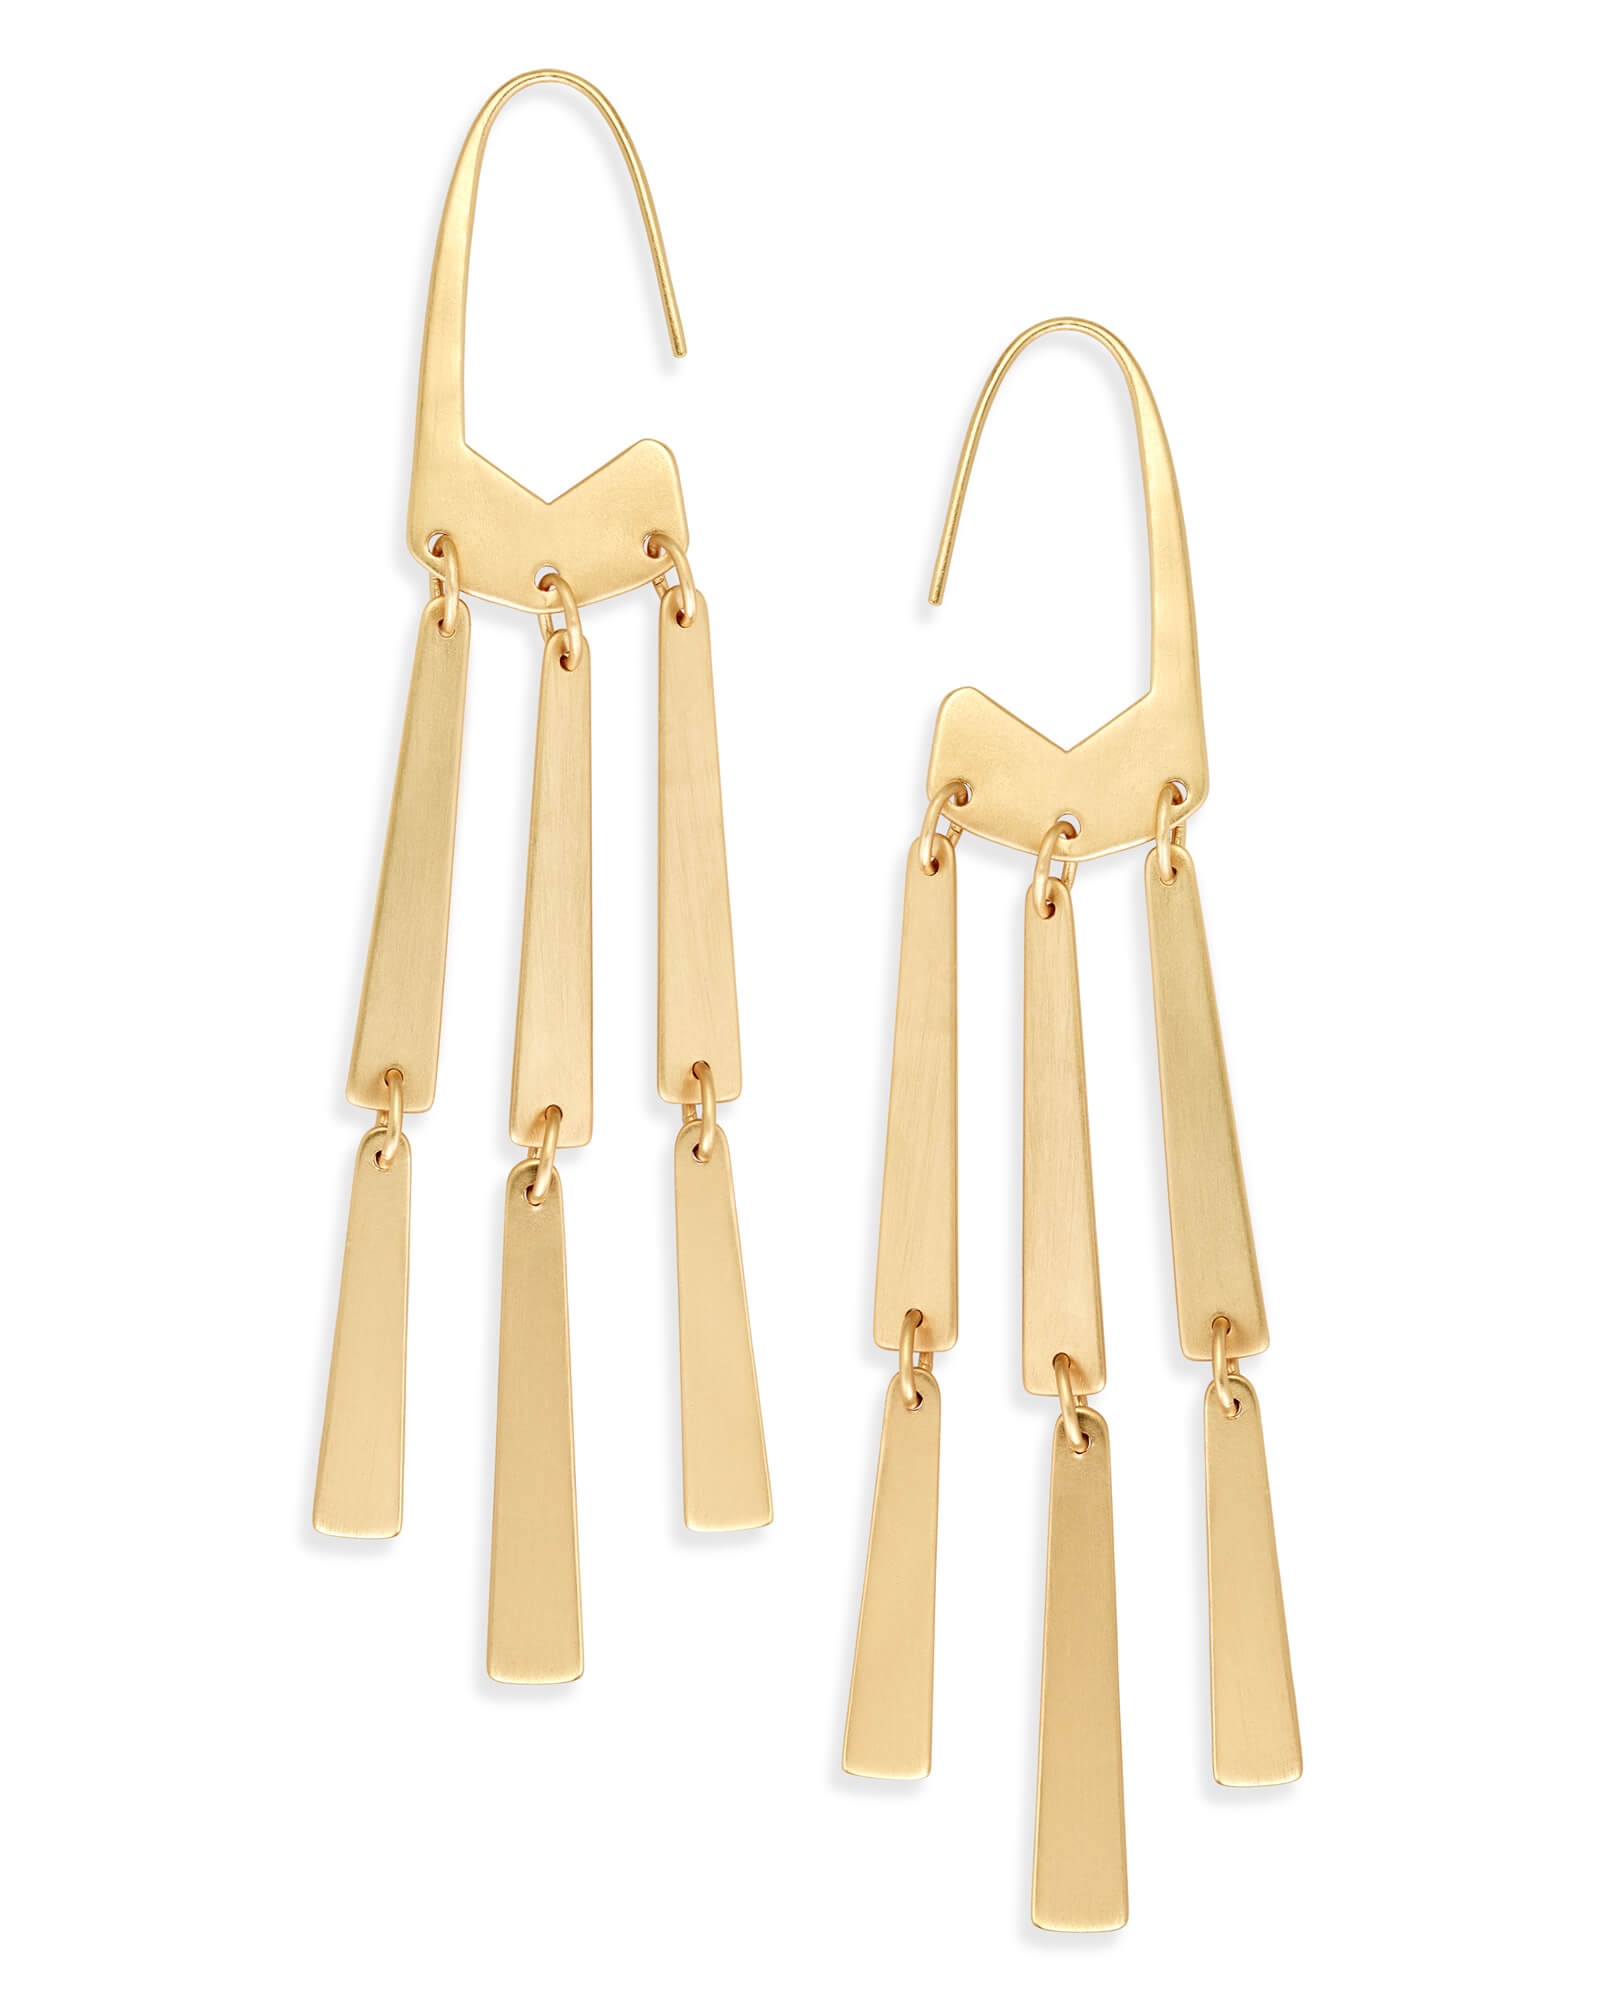 kendra-scott-mallie-statement-earrings-in-gold_00_default_lg.jpg